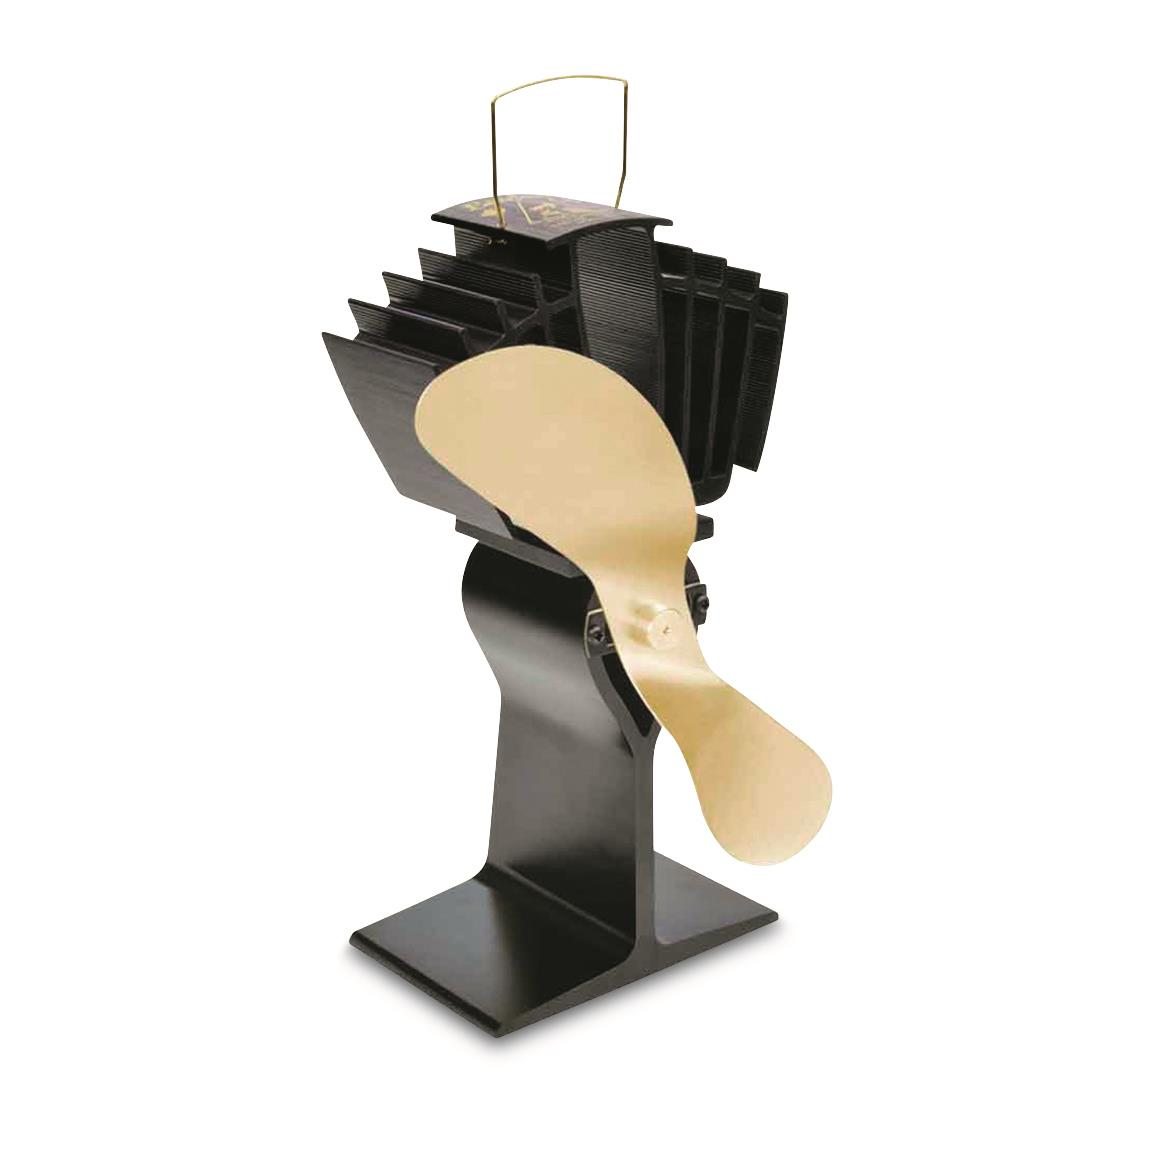 Ecofan AirMax Heat-Powered Wood Stove Fan, Gold